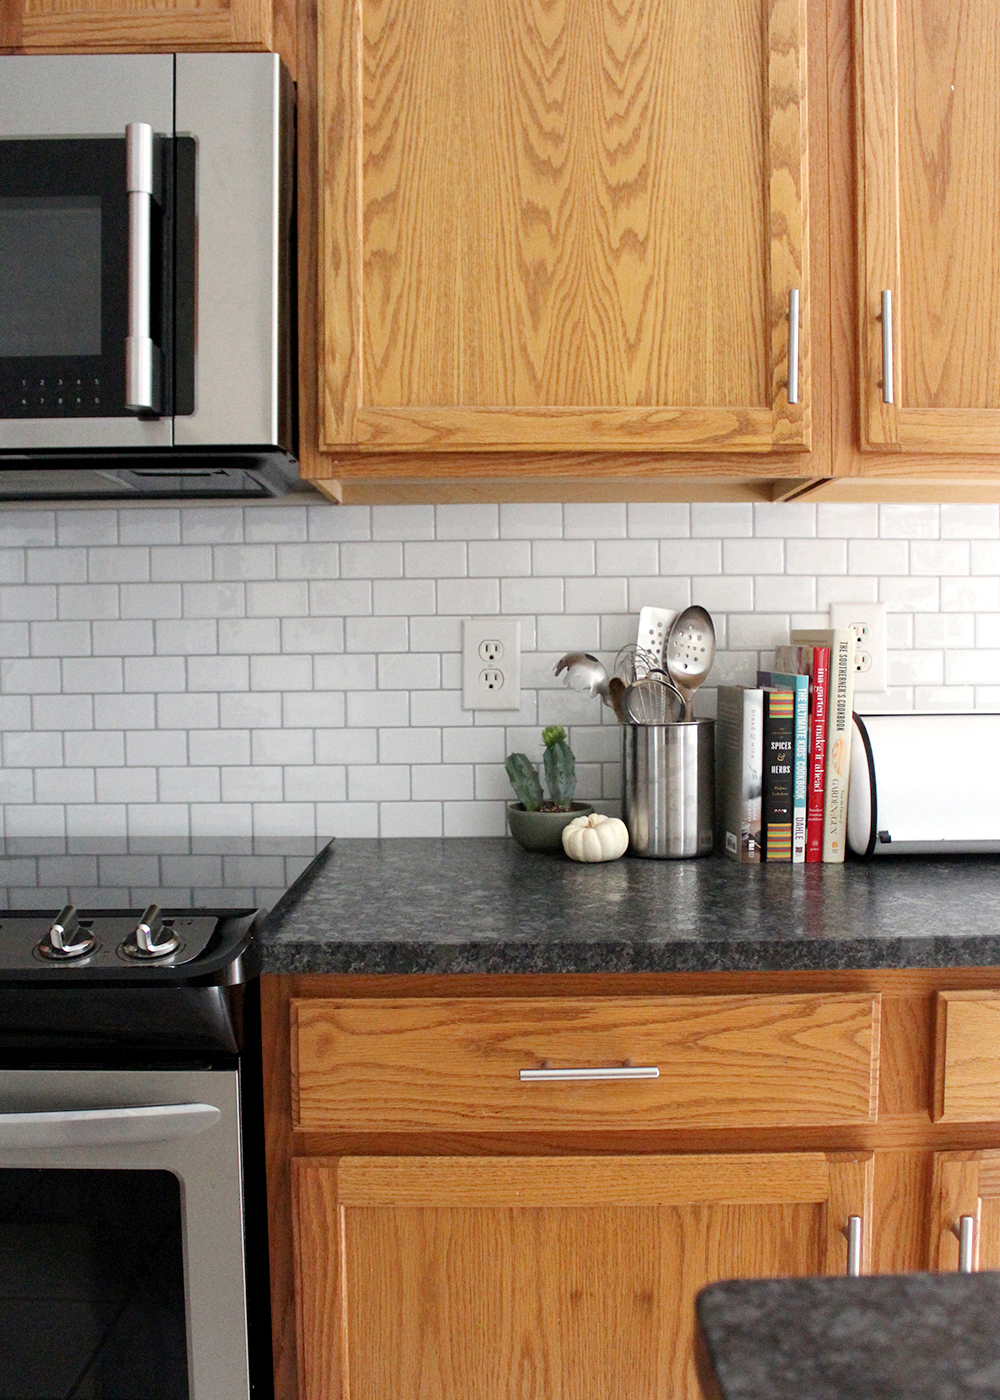 leathered granite countertops info | Top 10 Articles of the Year on Tag & Tibby